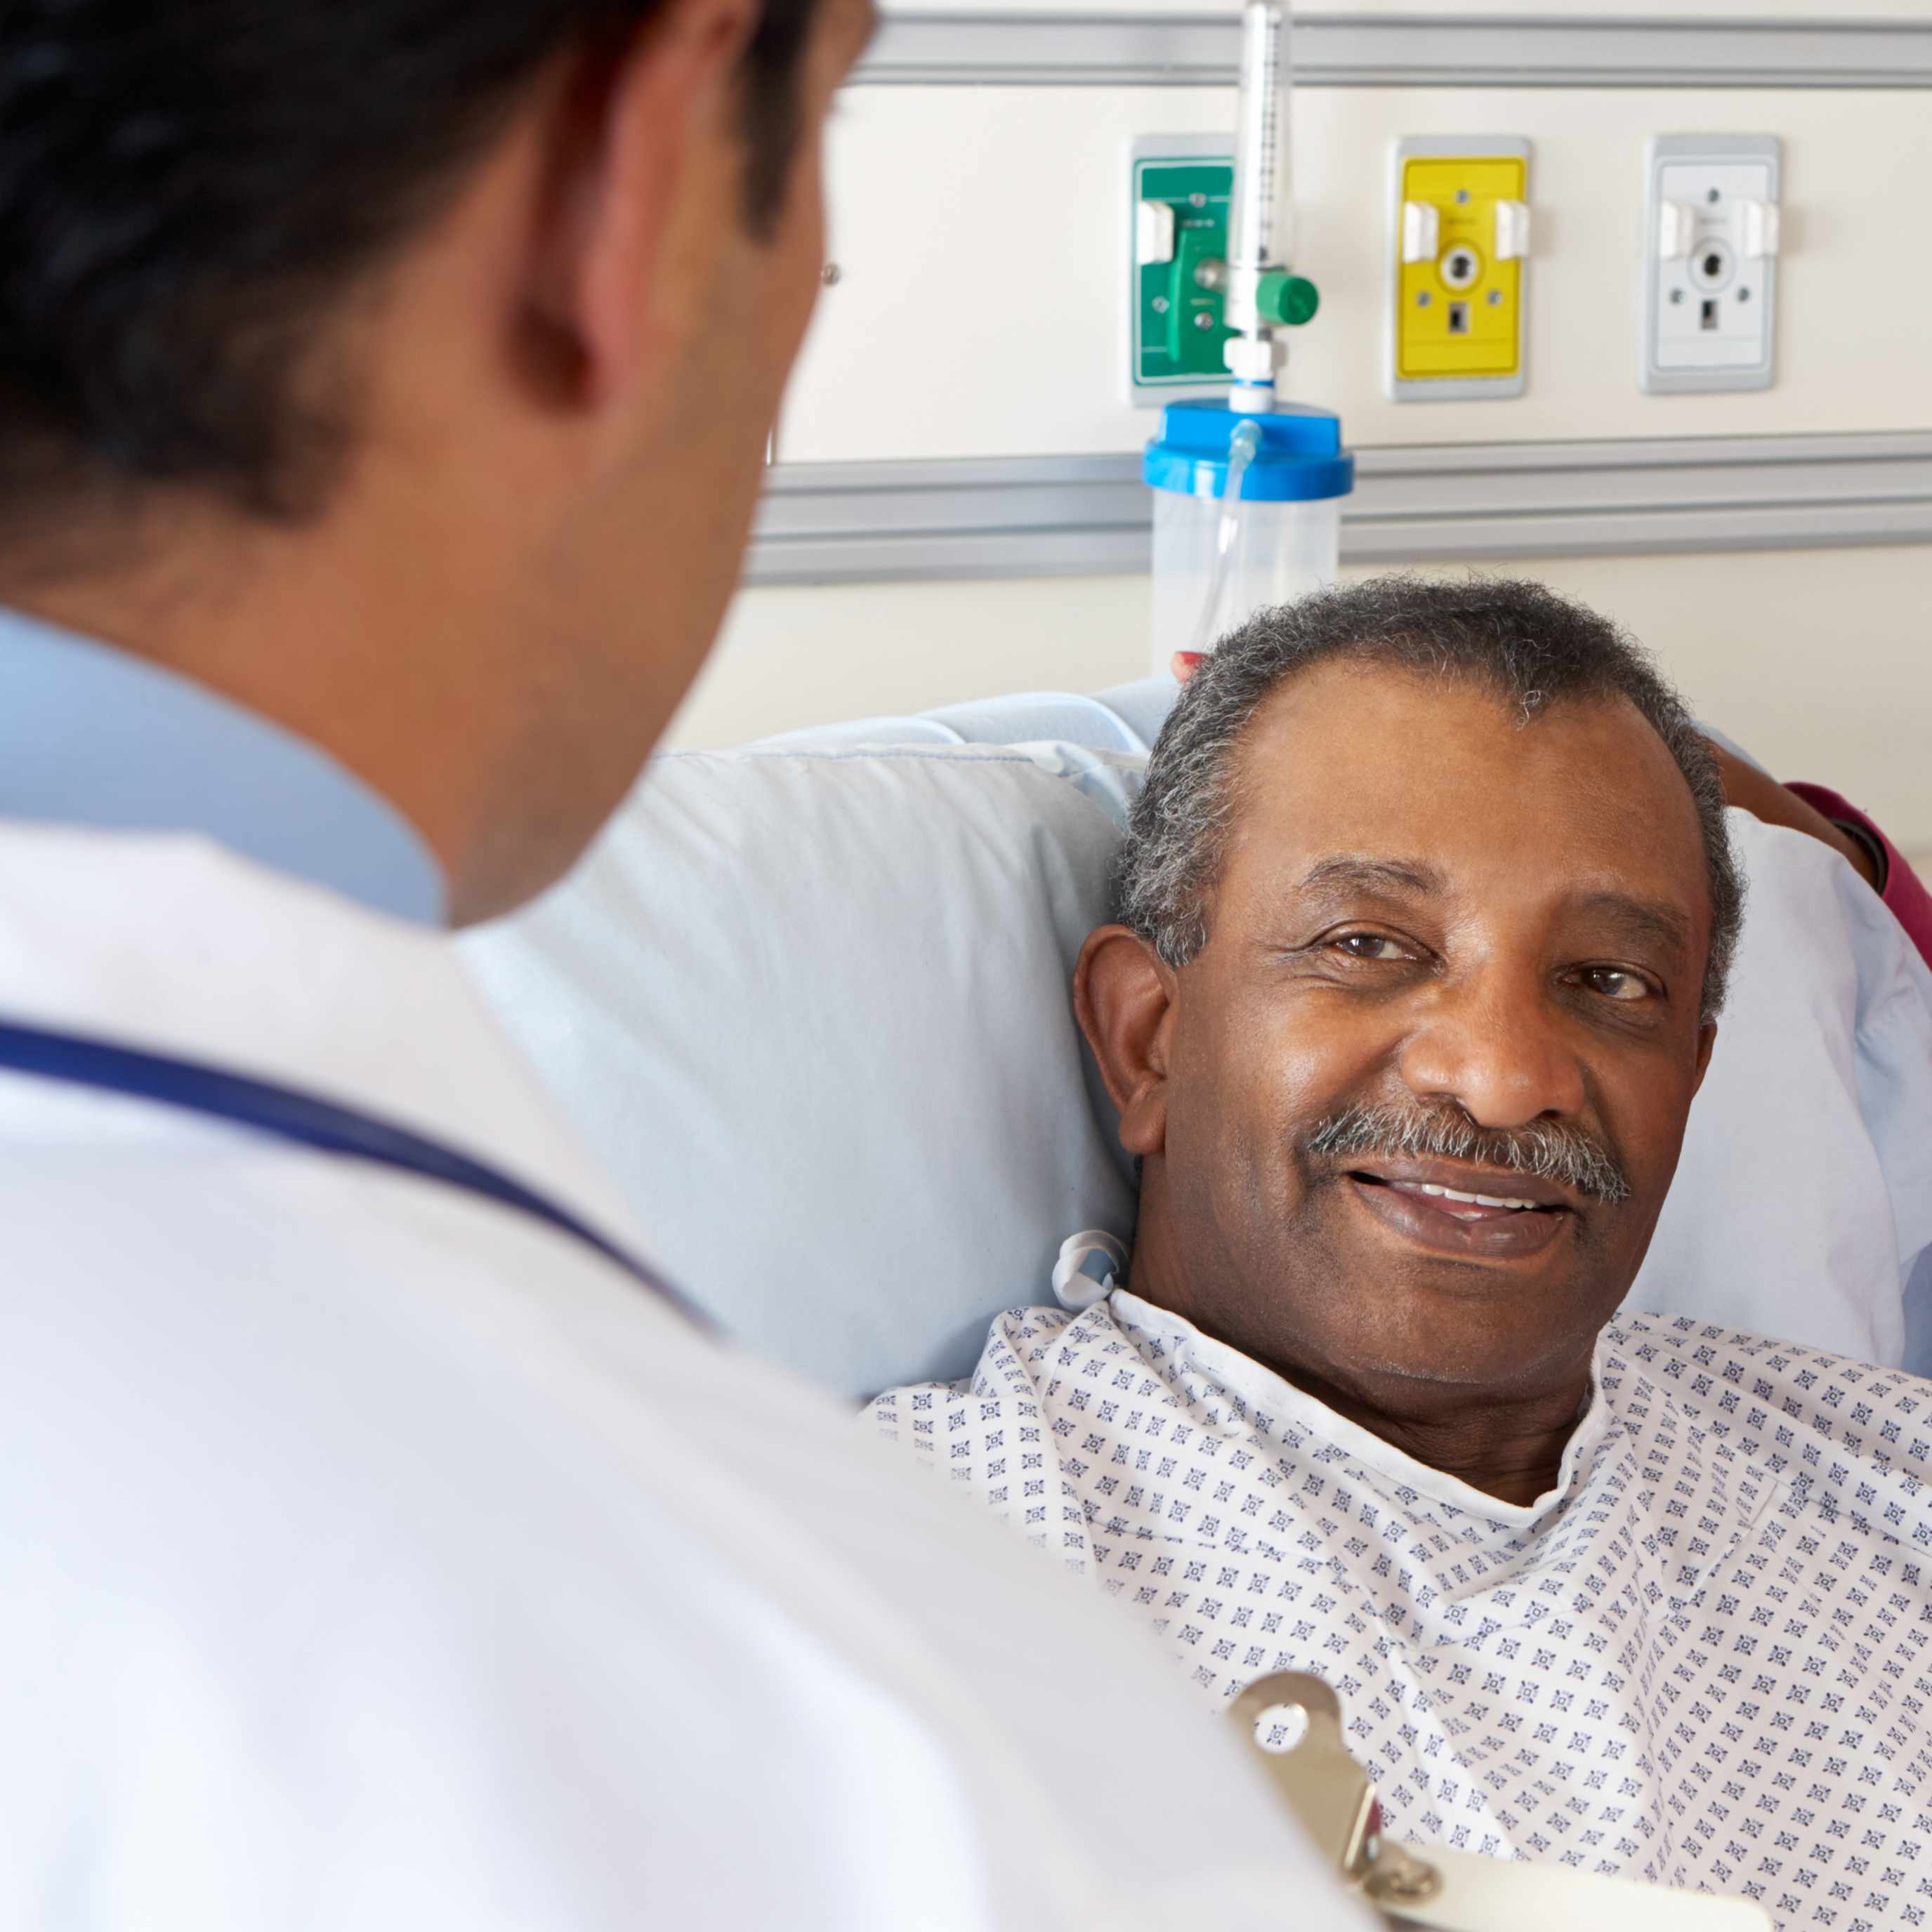 middled-aged African-American man in hospital bed, with his wife talking with doctor